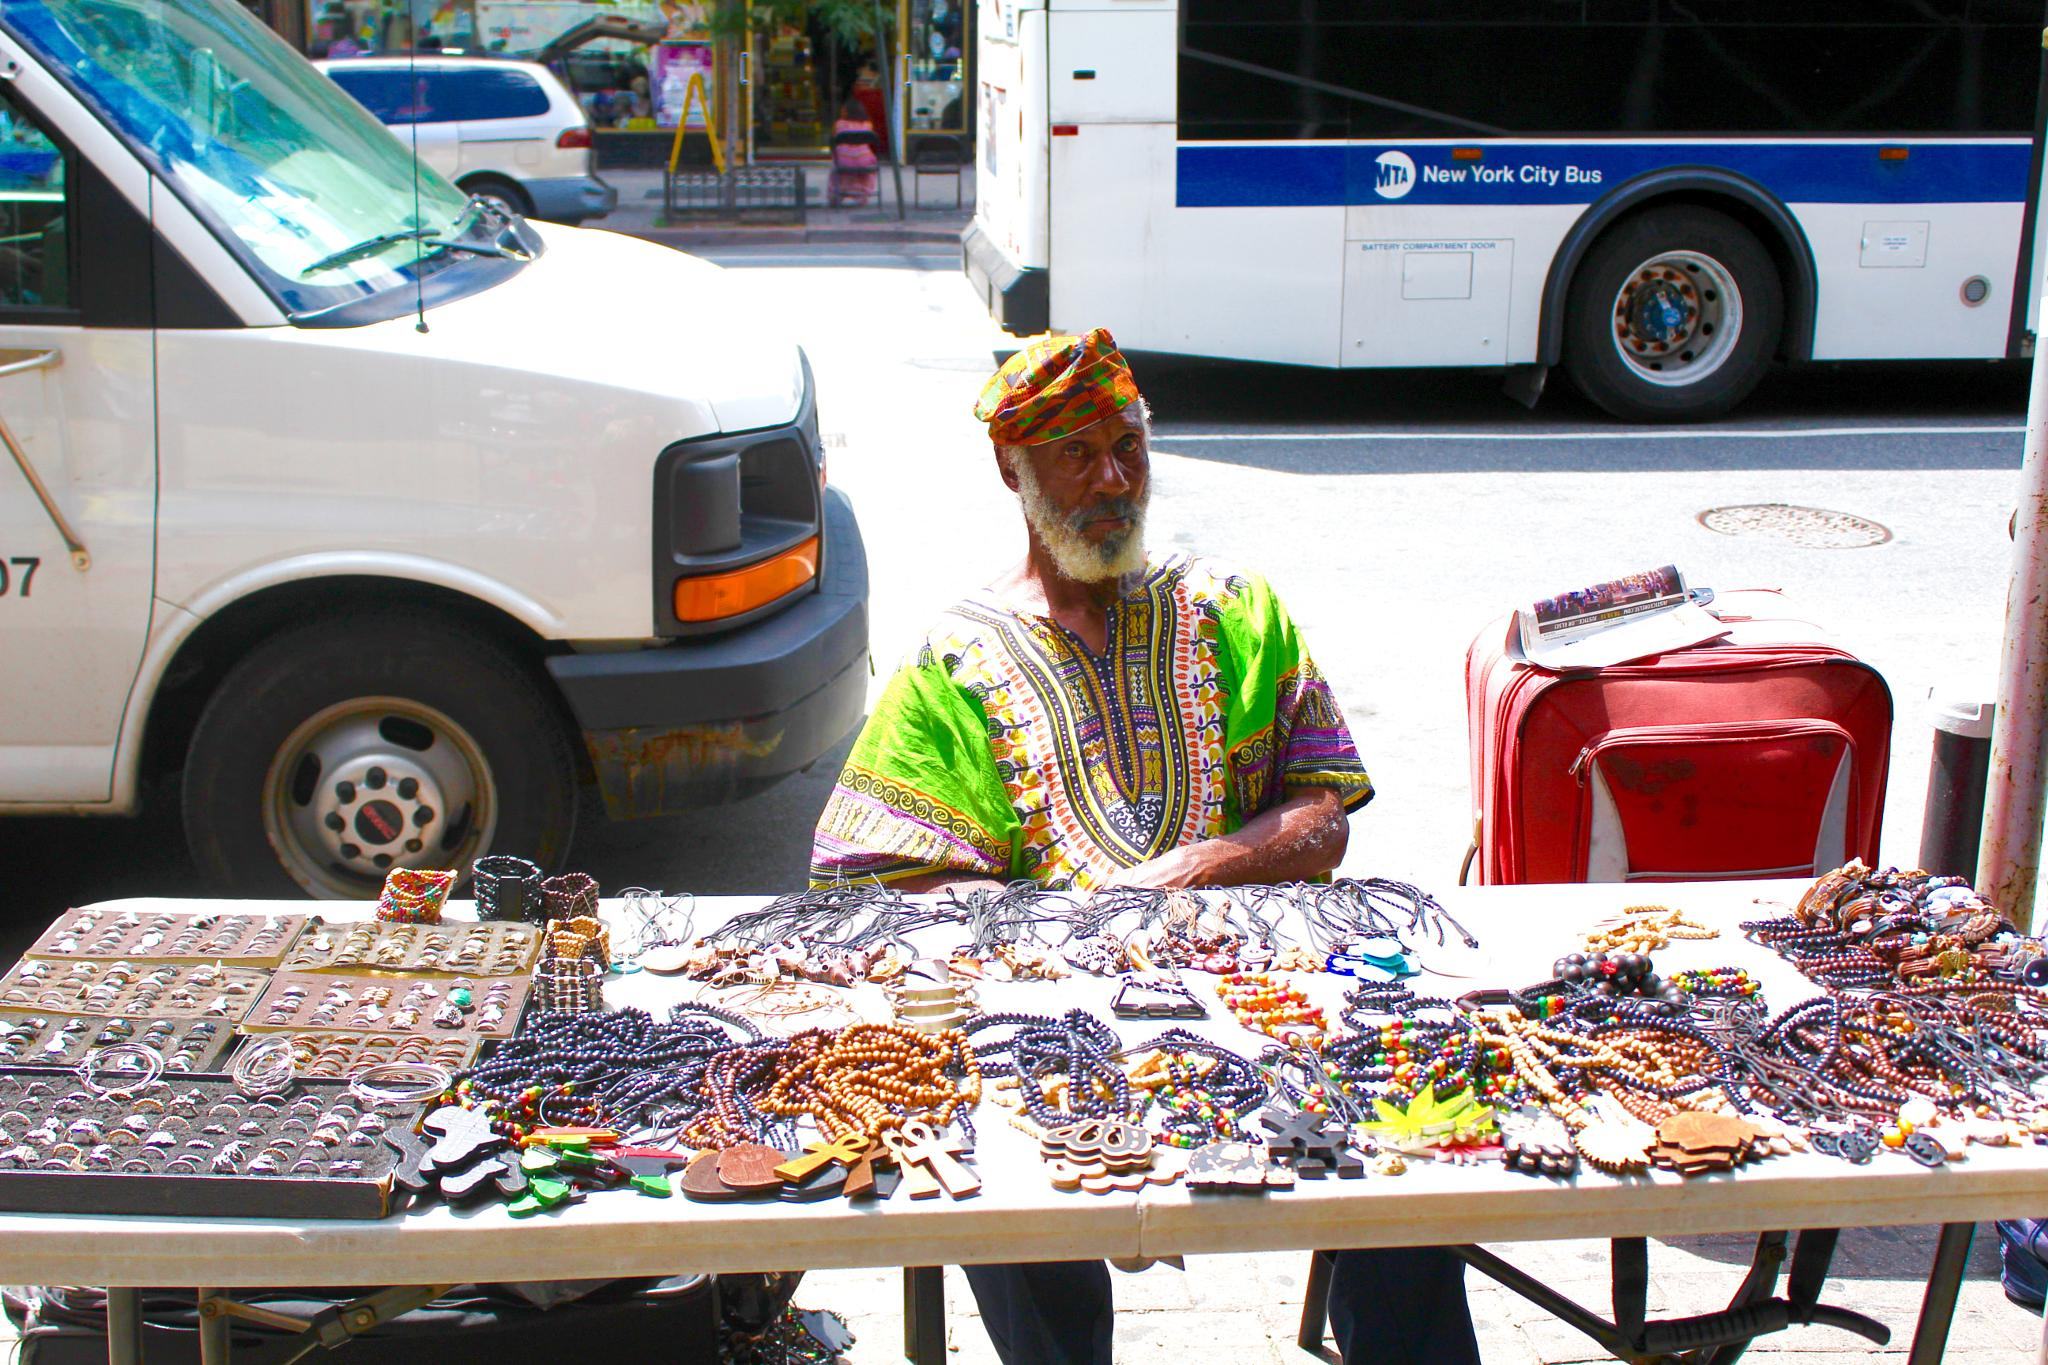 Vendor in Harlem by Snickandmephotography